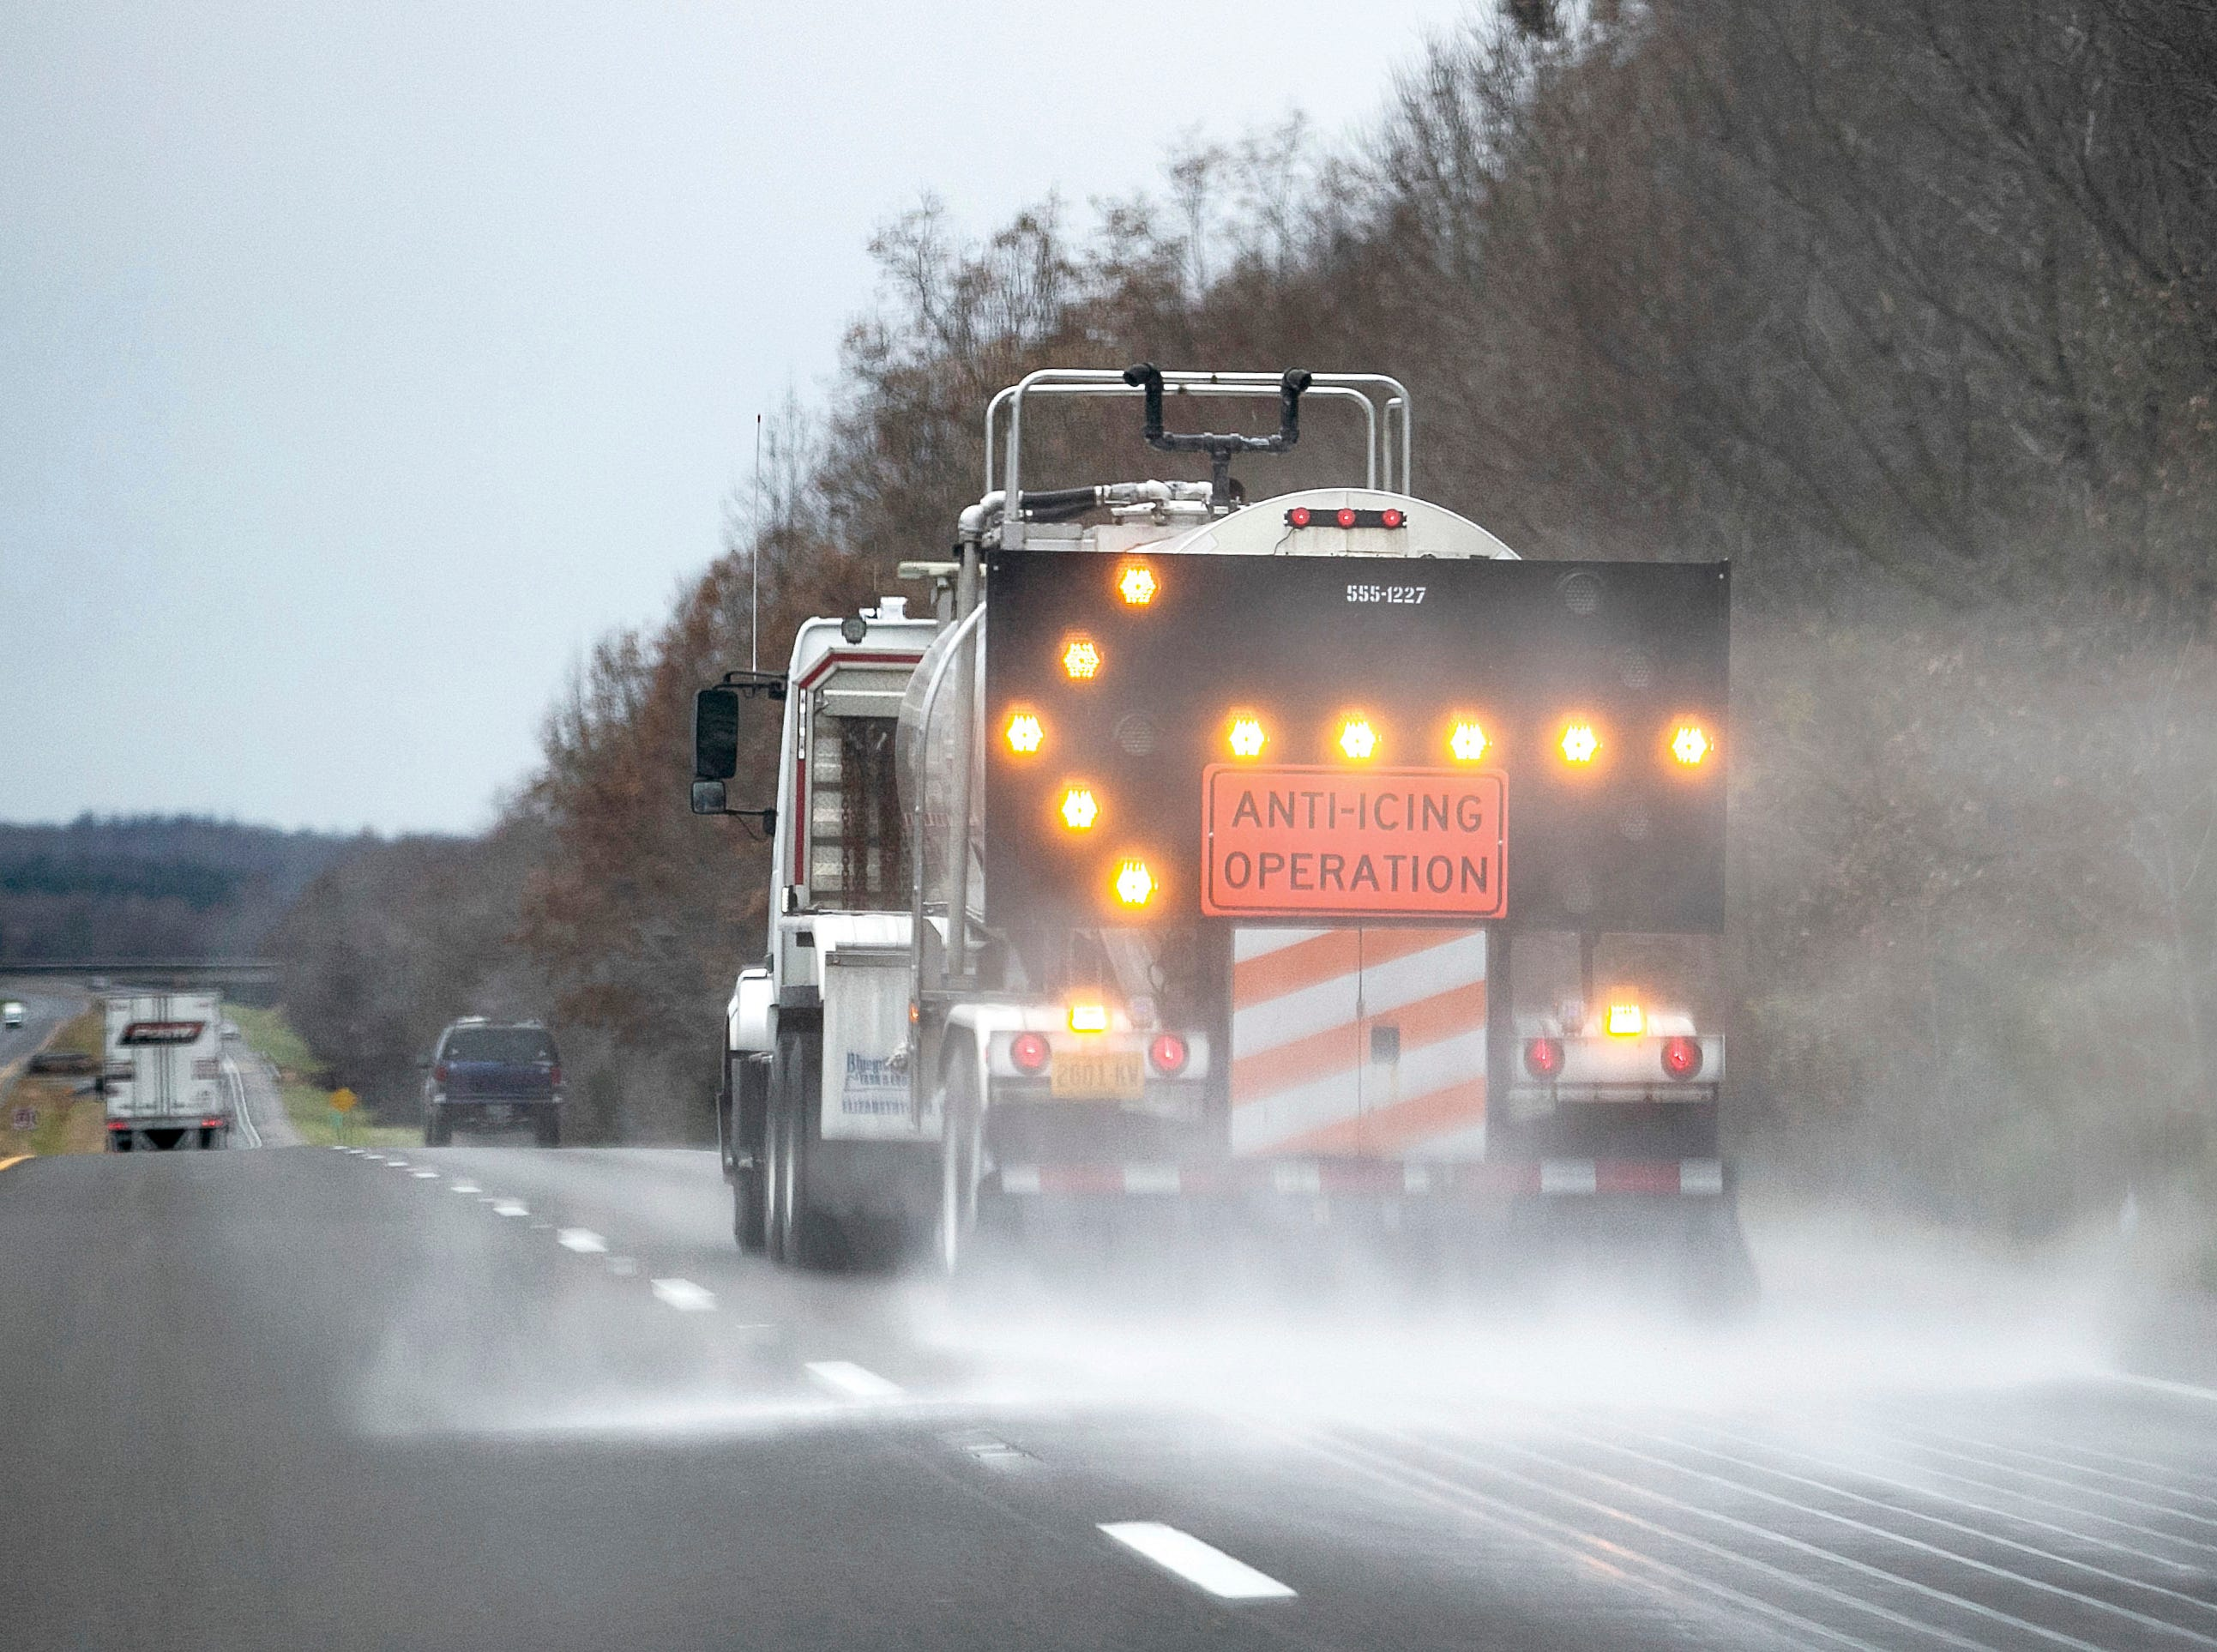 A Kentucky Department of Transportation vehicle sprays salt brine on Highway 45 South near Wingo, Kentucky on Thursday, Dec. 6, 2018. There is potential for a winter storm to hit western Kentucky this weekend. The system is expected to move in late Saturday through Sunday and Monday, but the exact areas of impact and extent of those impacts are still in question.